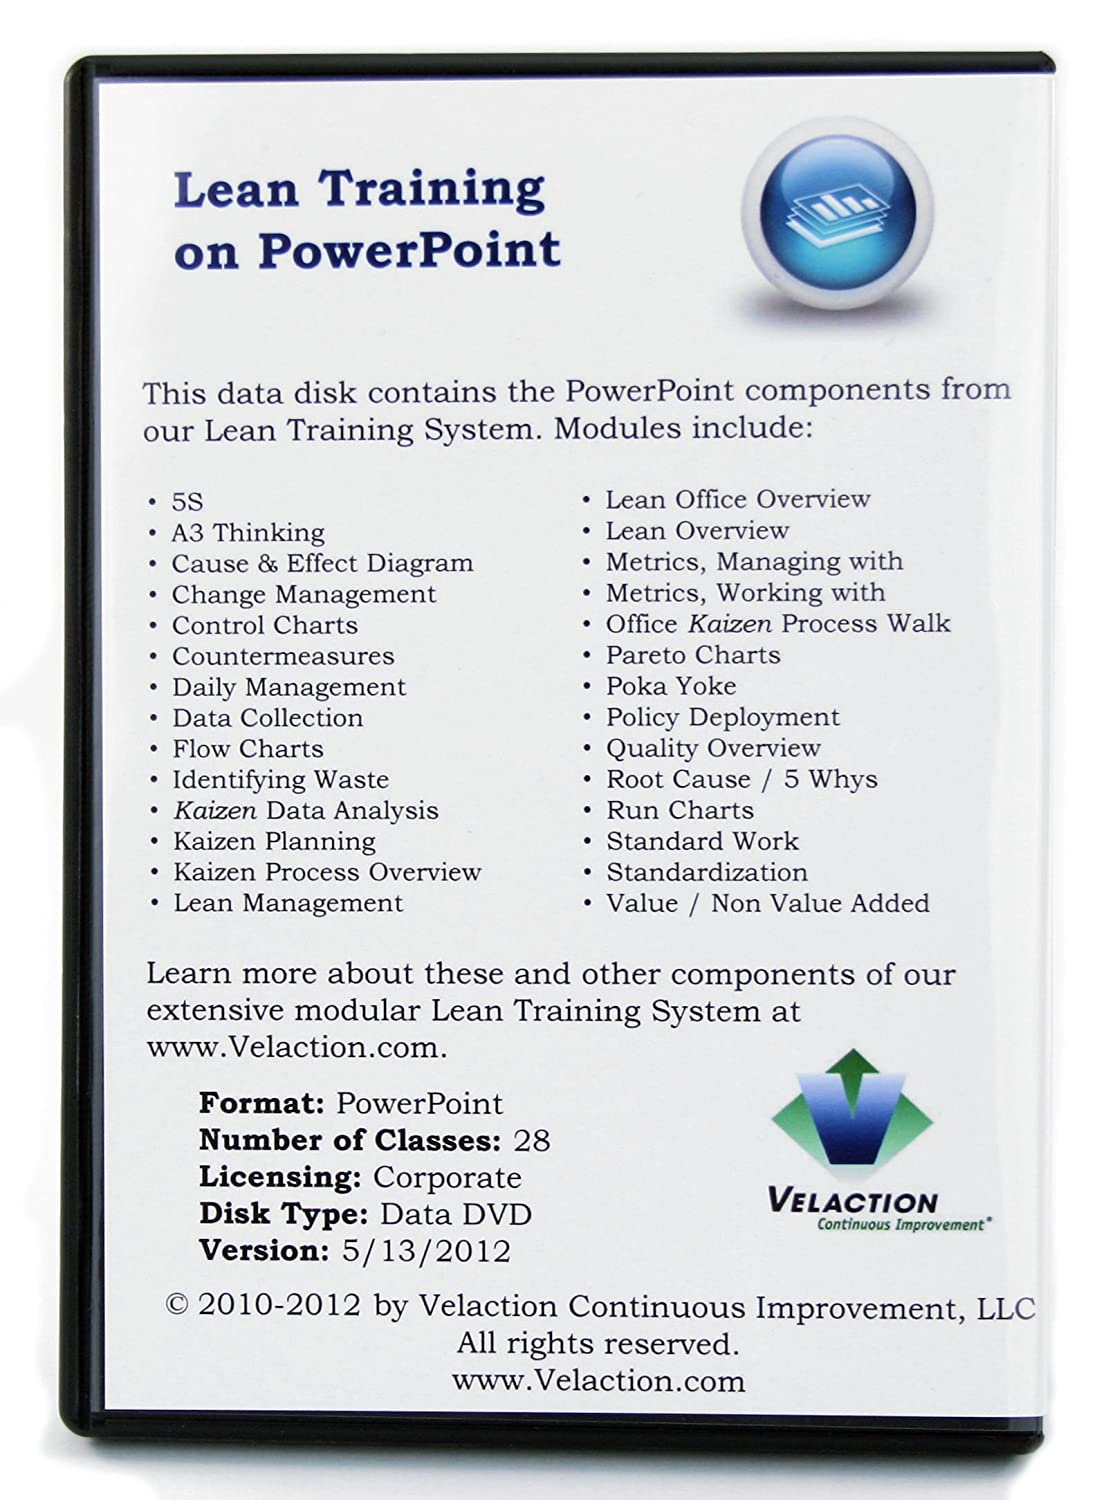 Lean Powerpoint Training Pack 28 Presentations 26 Process Flow Diagram 2010 Forms Tools 40 Terms On Pdf Office Products Industrial